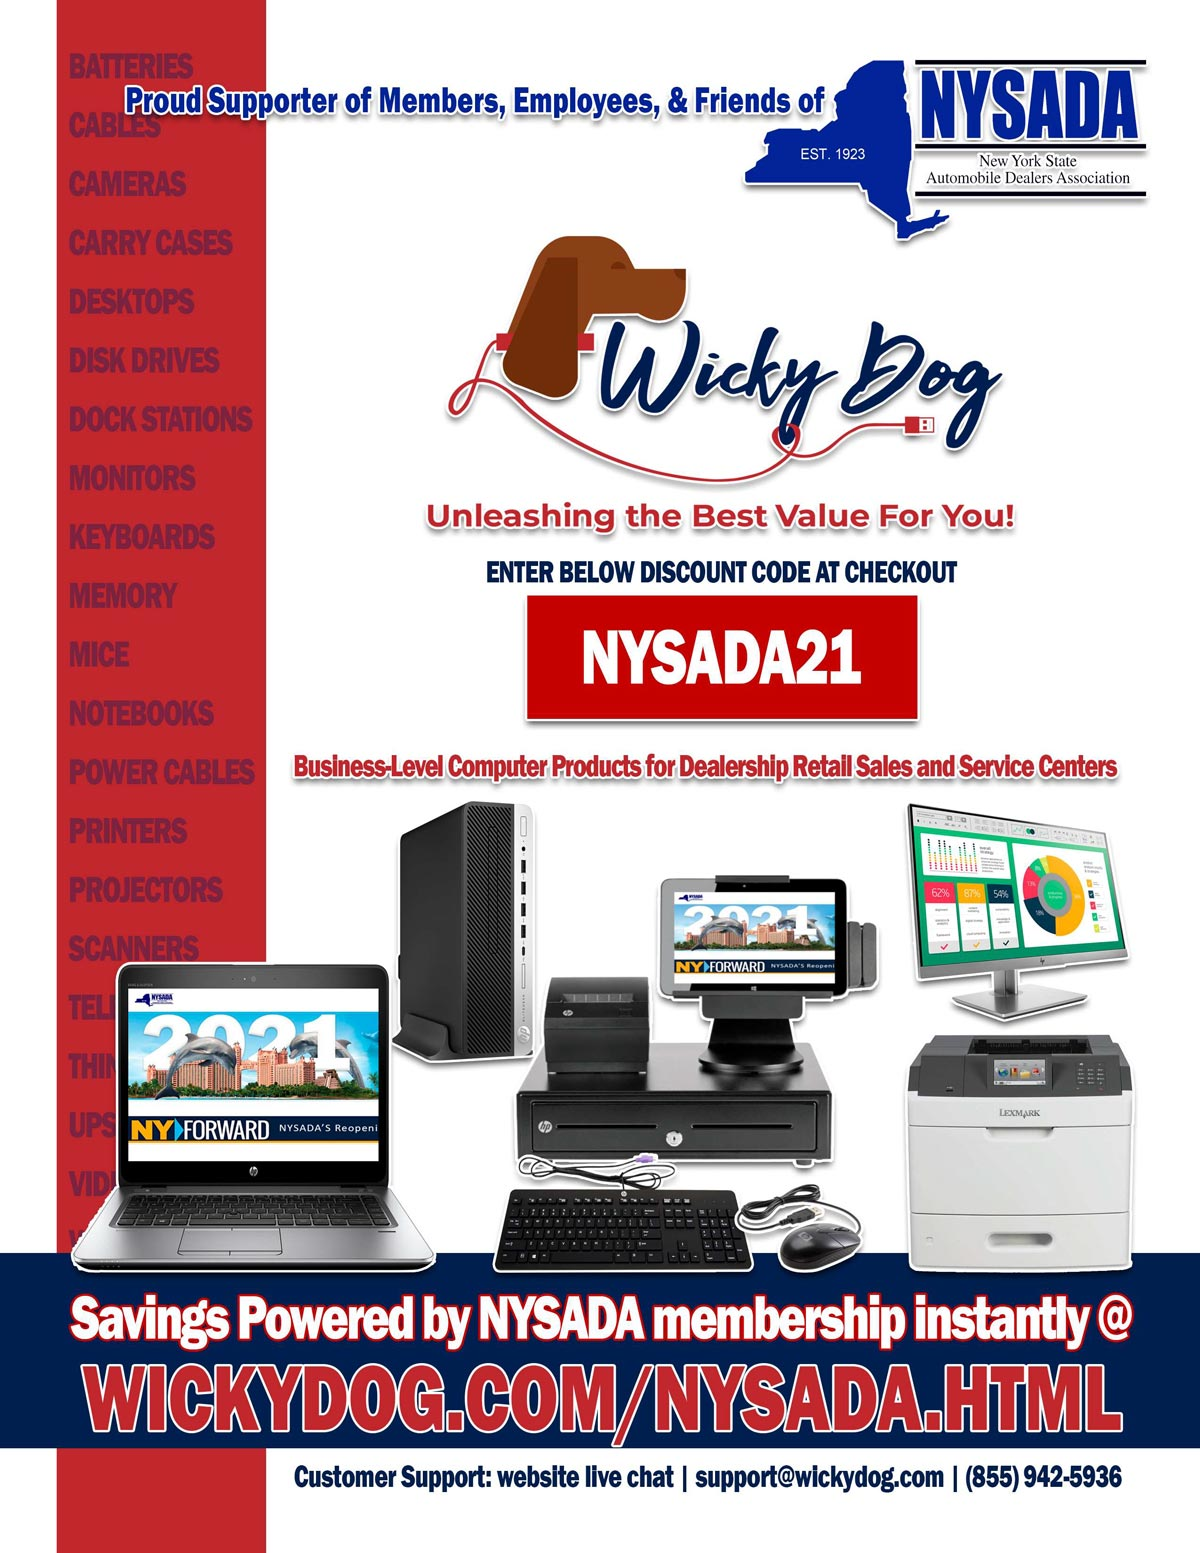 WickyDog Welcomes All NYSADA Members, Families, & their Friends